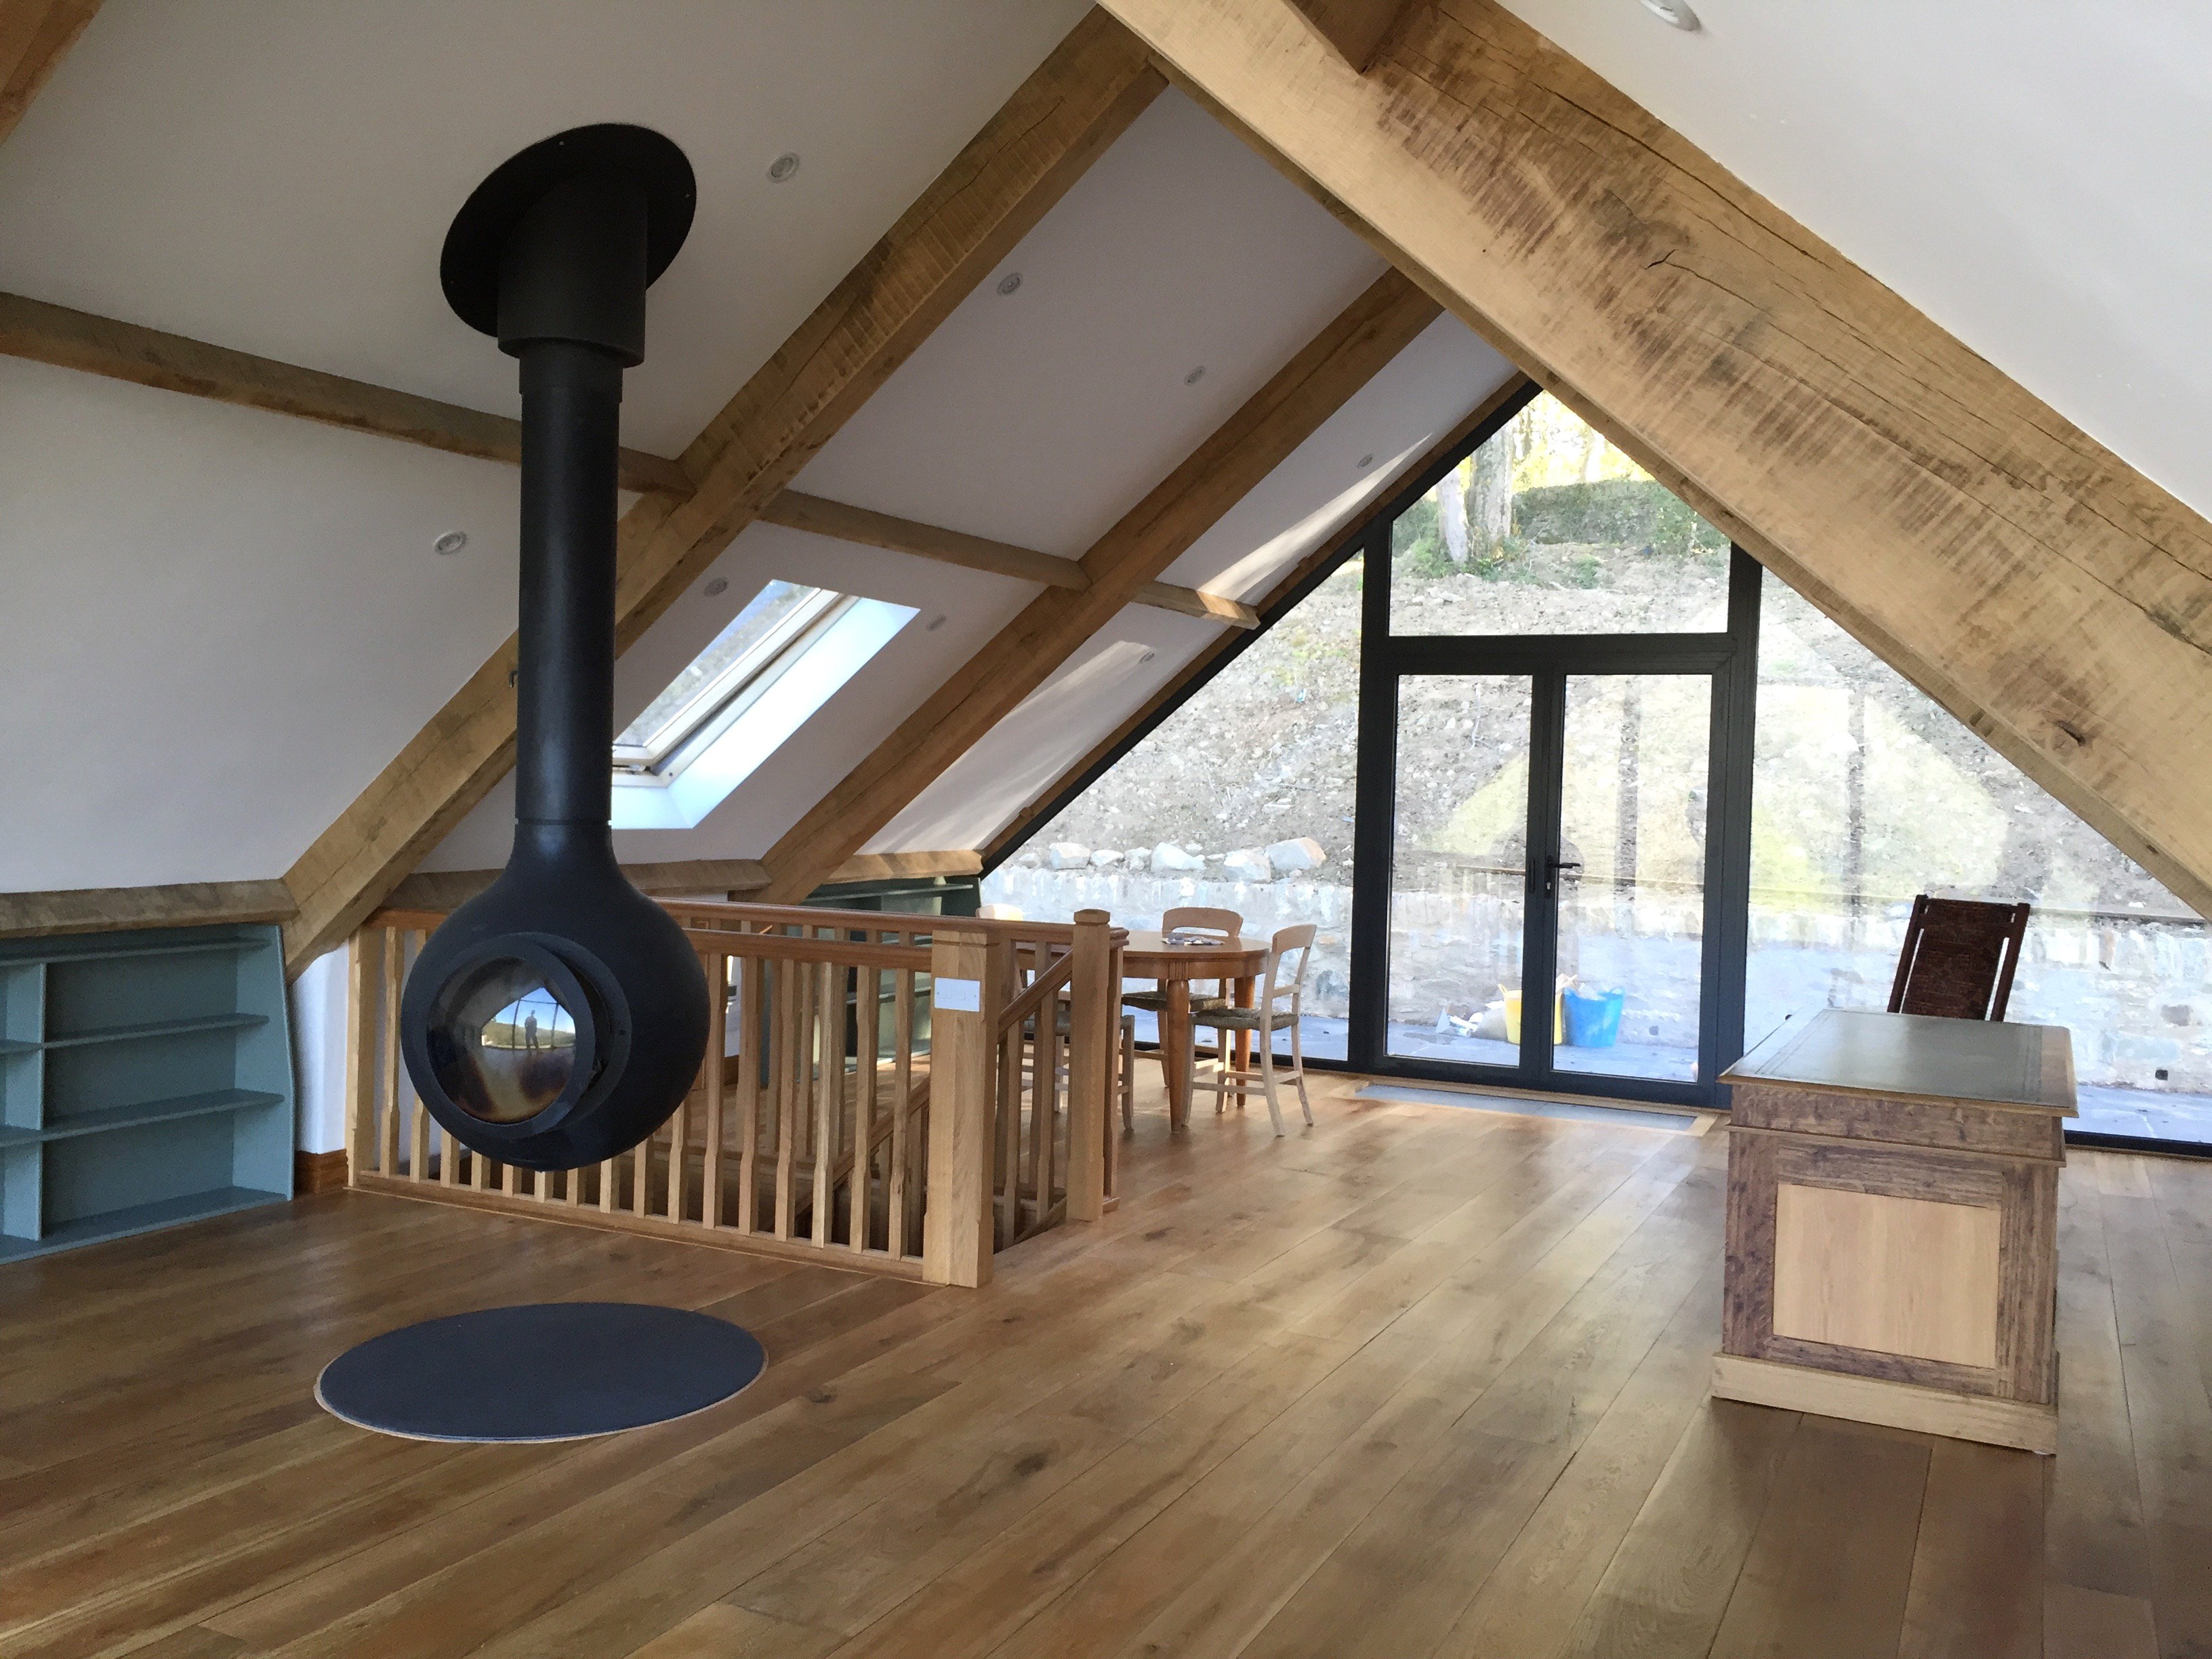 Barn Conversion Bradford, West Yorkshire